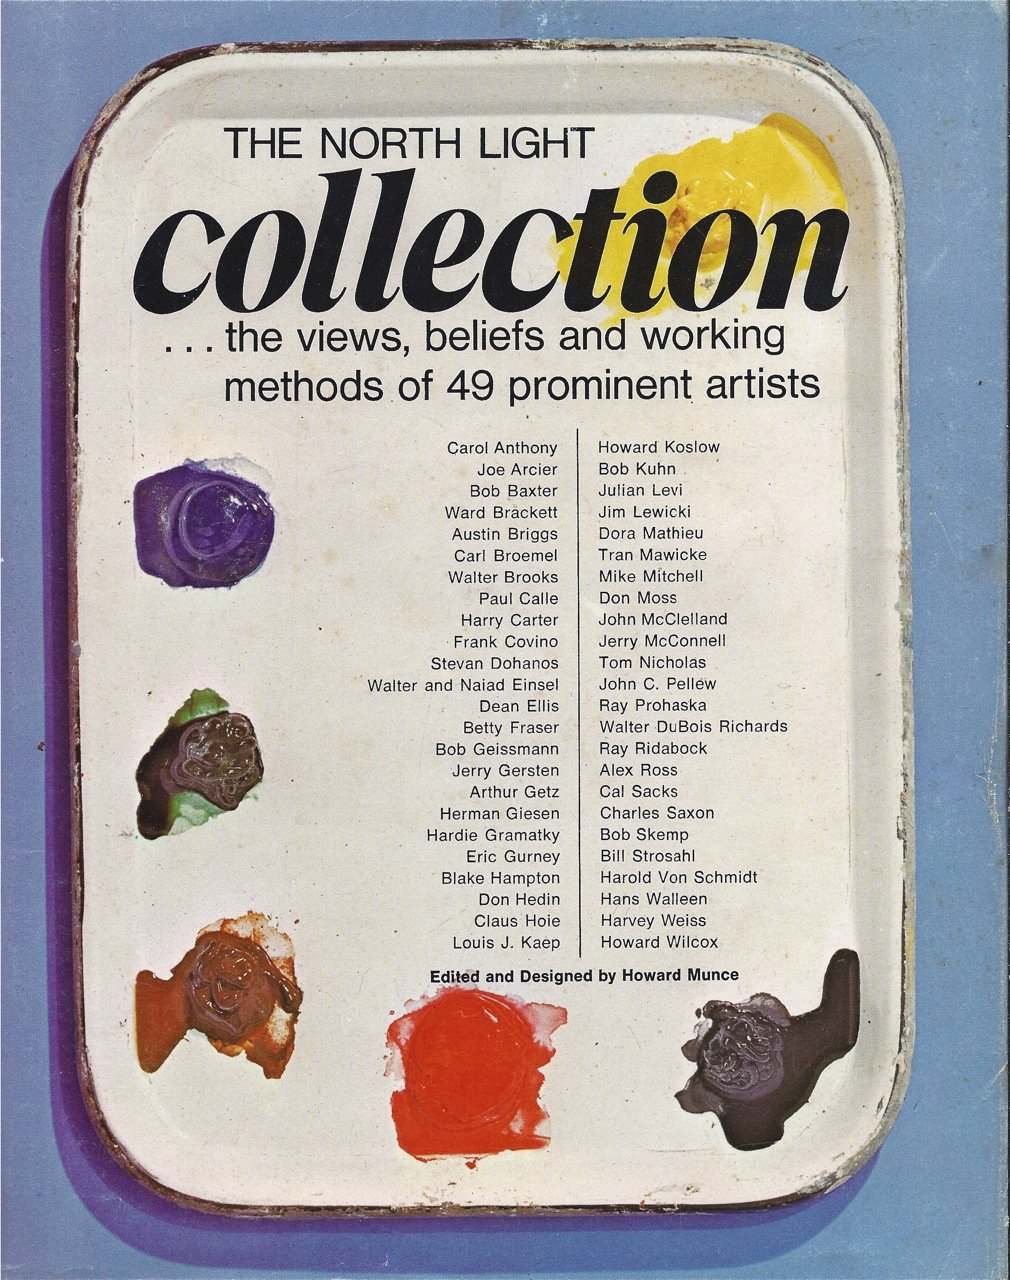 The North Light Collection: The Views, Beliefs and Working Methods of 49 Prominent Artists